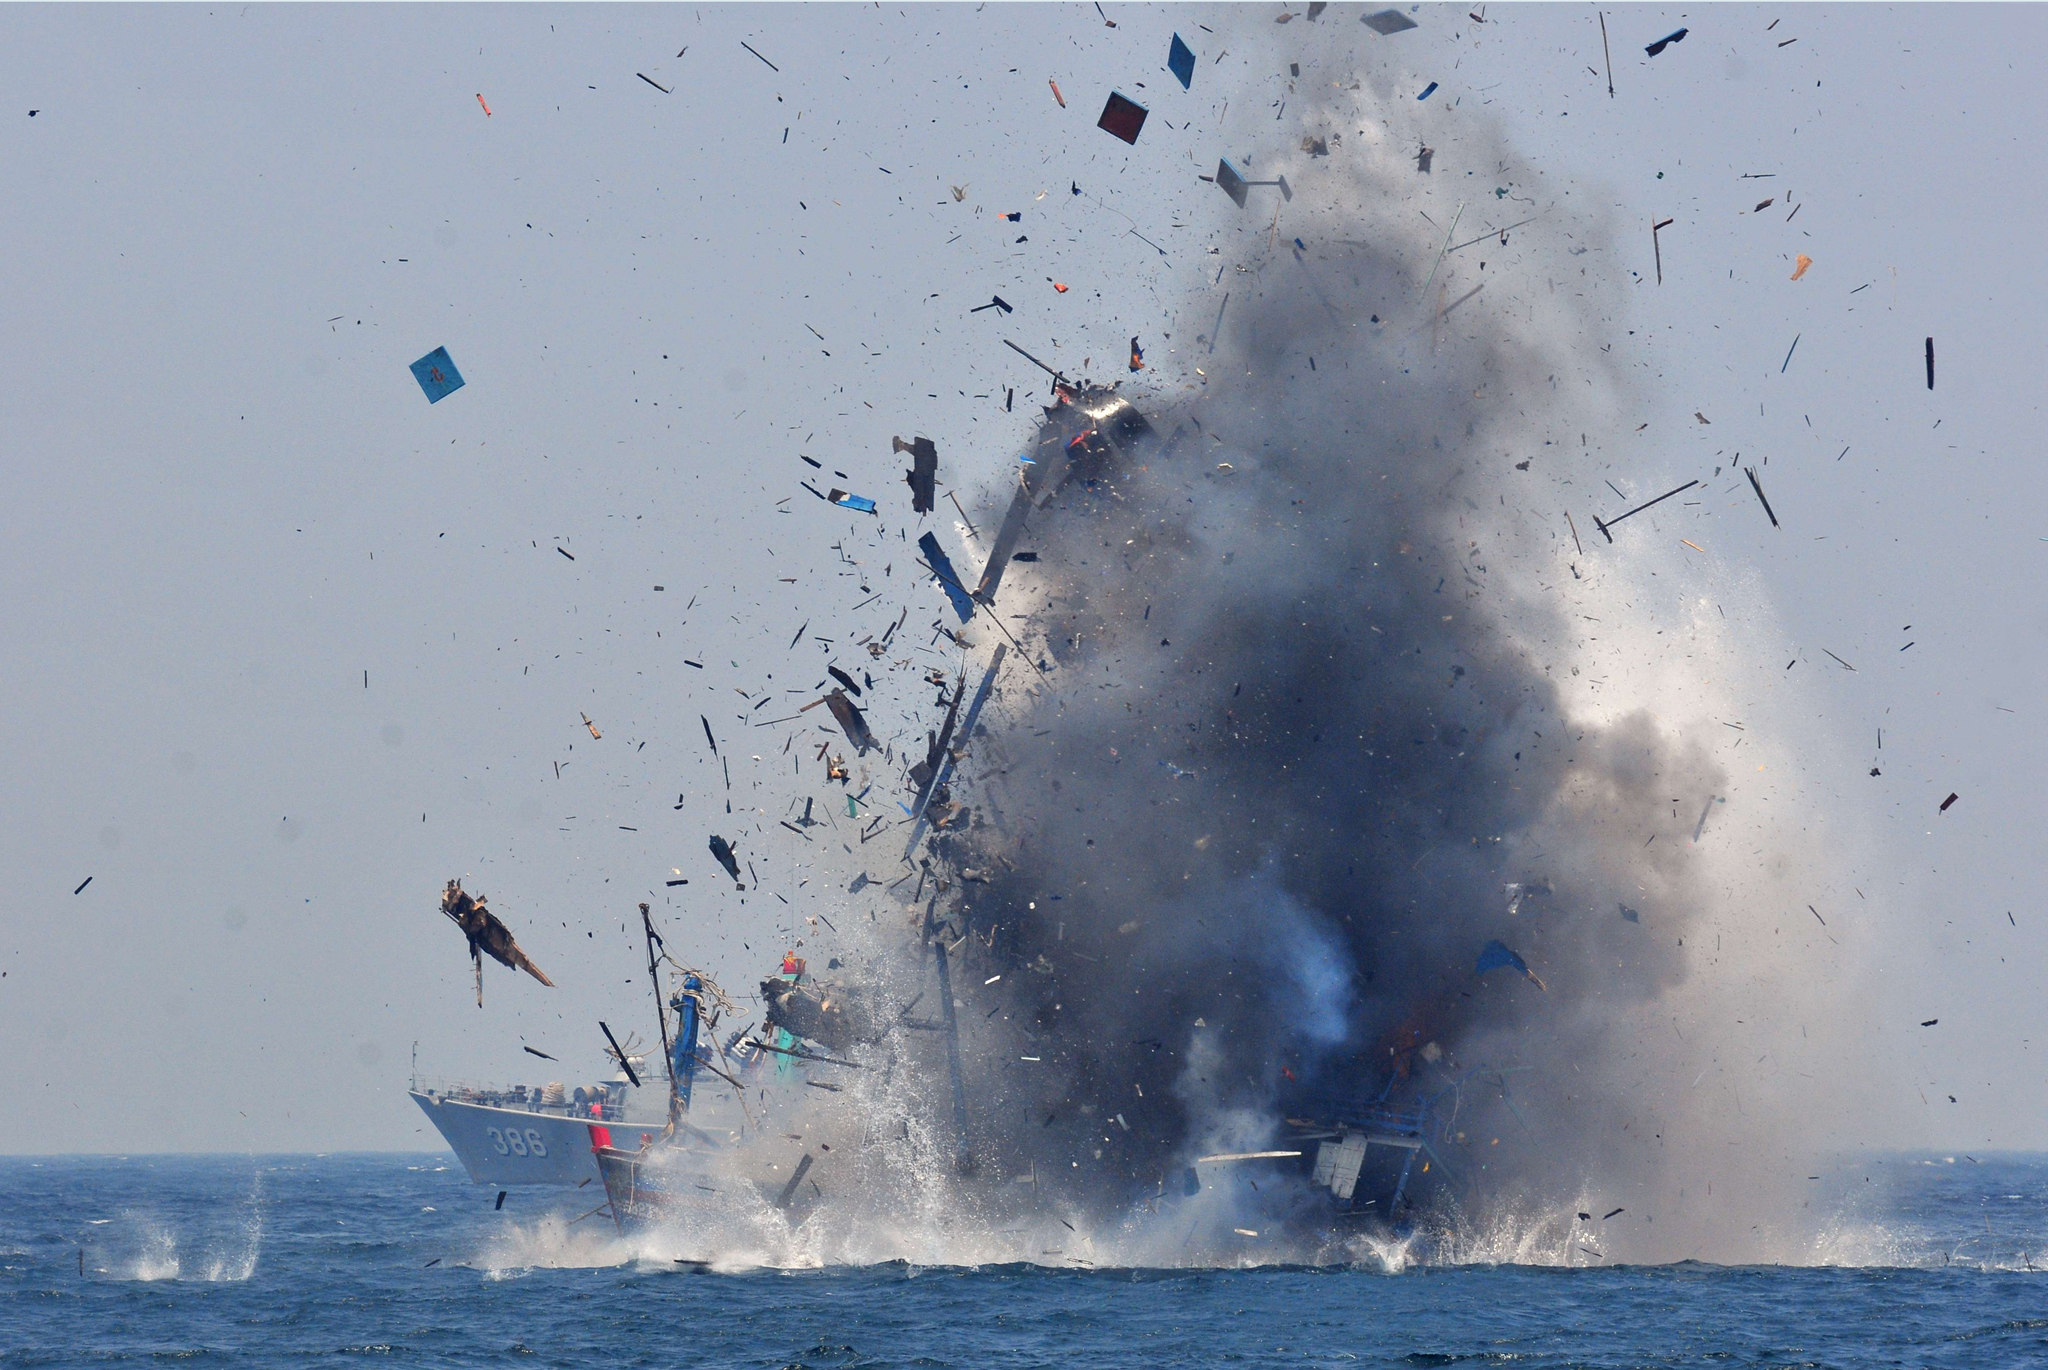 Foreign fishing boats seized by Indonesian authorities, for illegal fishing, are blown up by Navy personnel off Pontianak in West Kalimantan province, located in Borneo island.